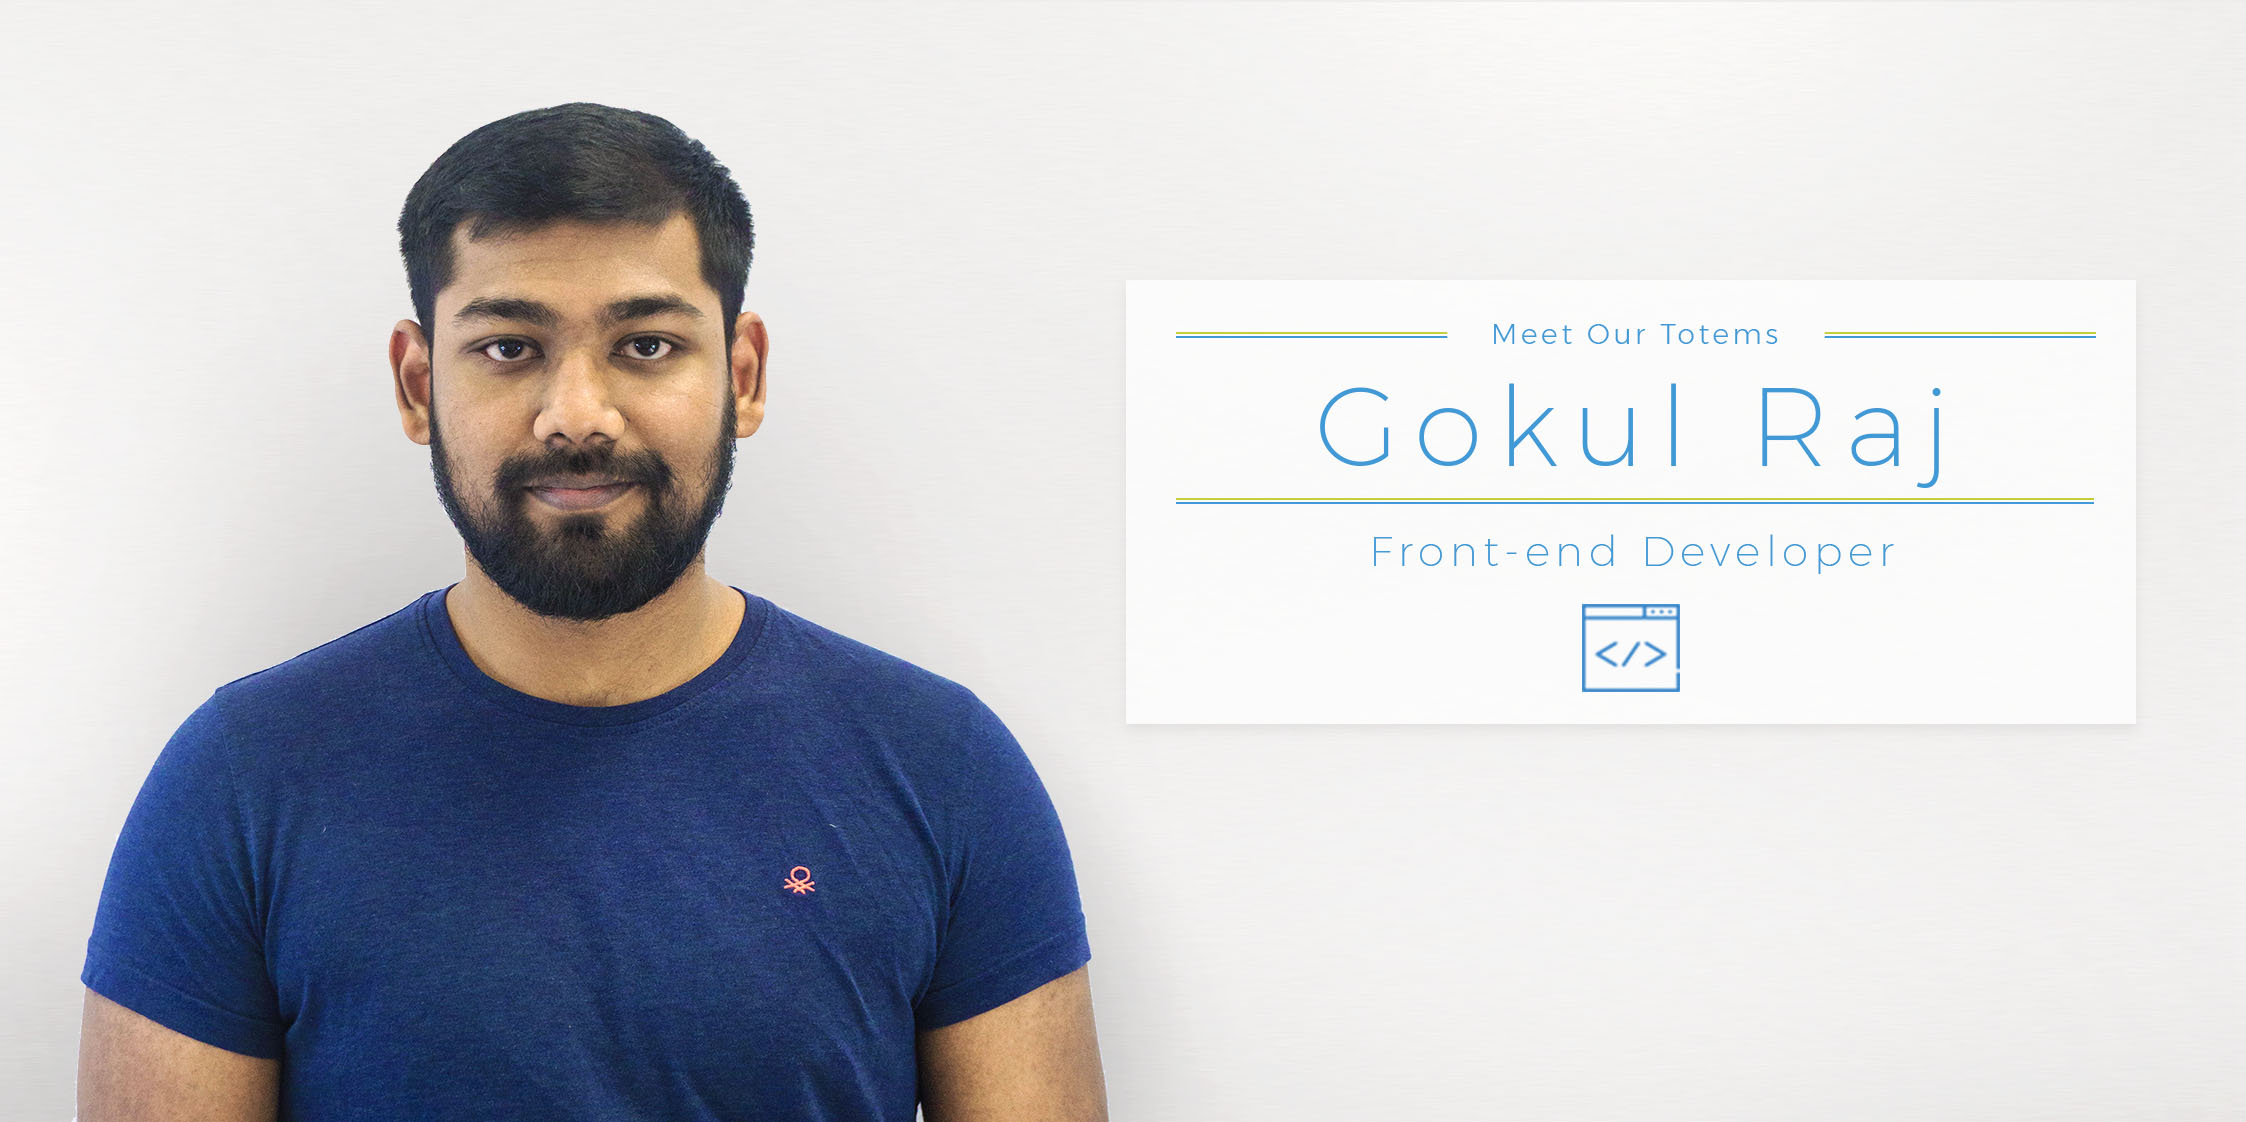 Meet your totems: Front End Developer Gokul Raj